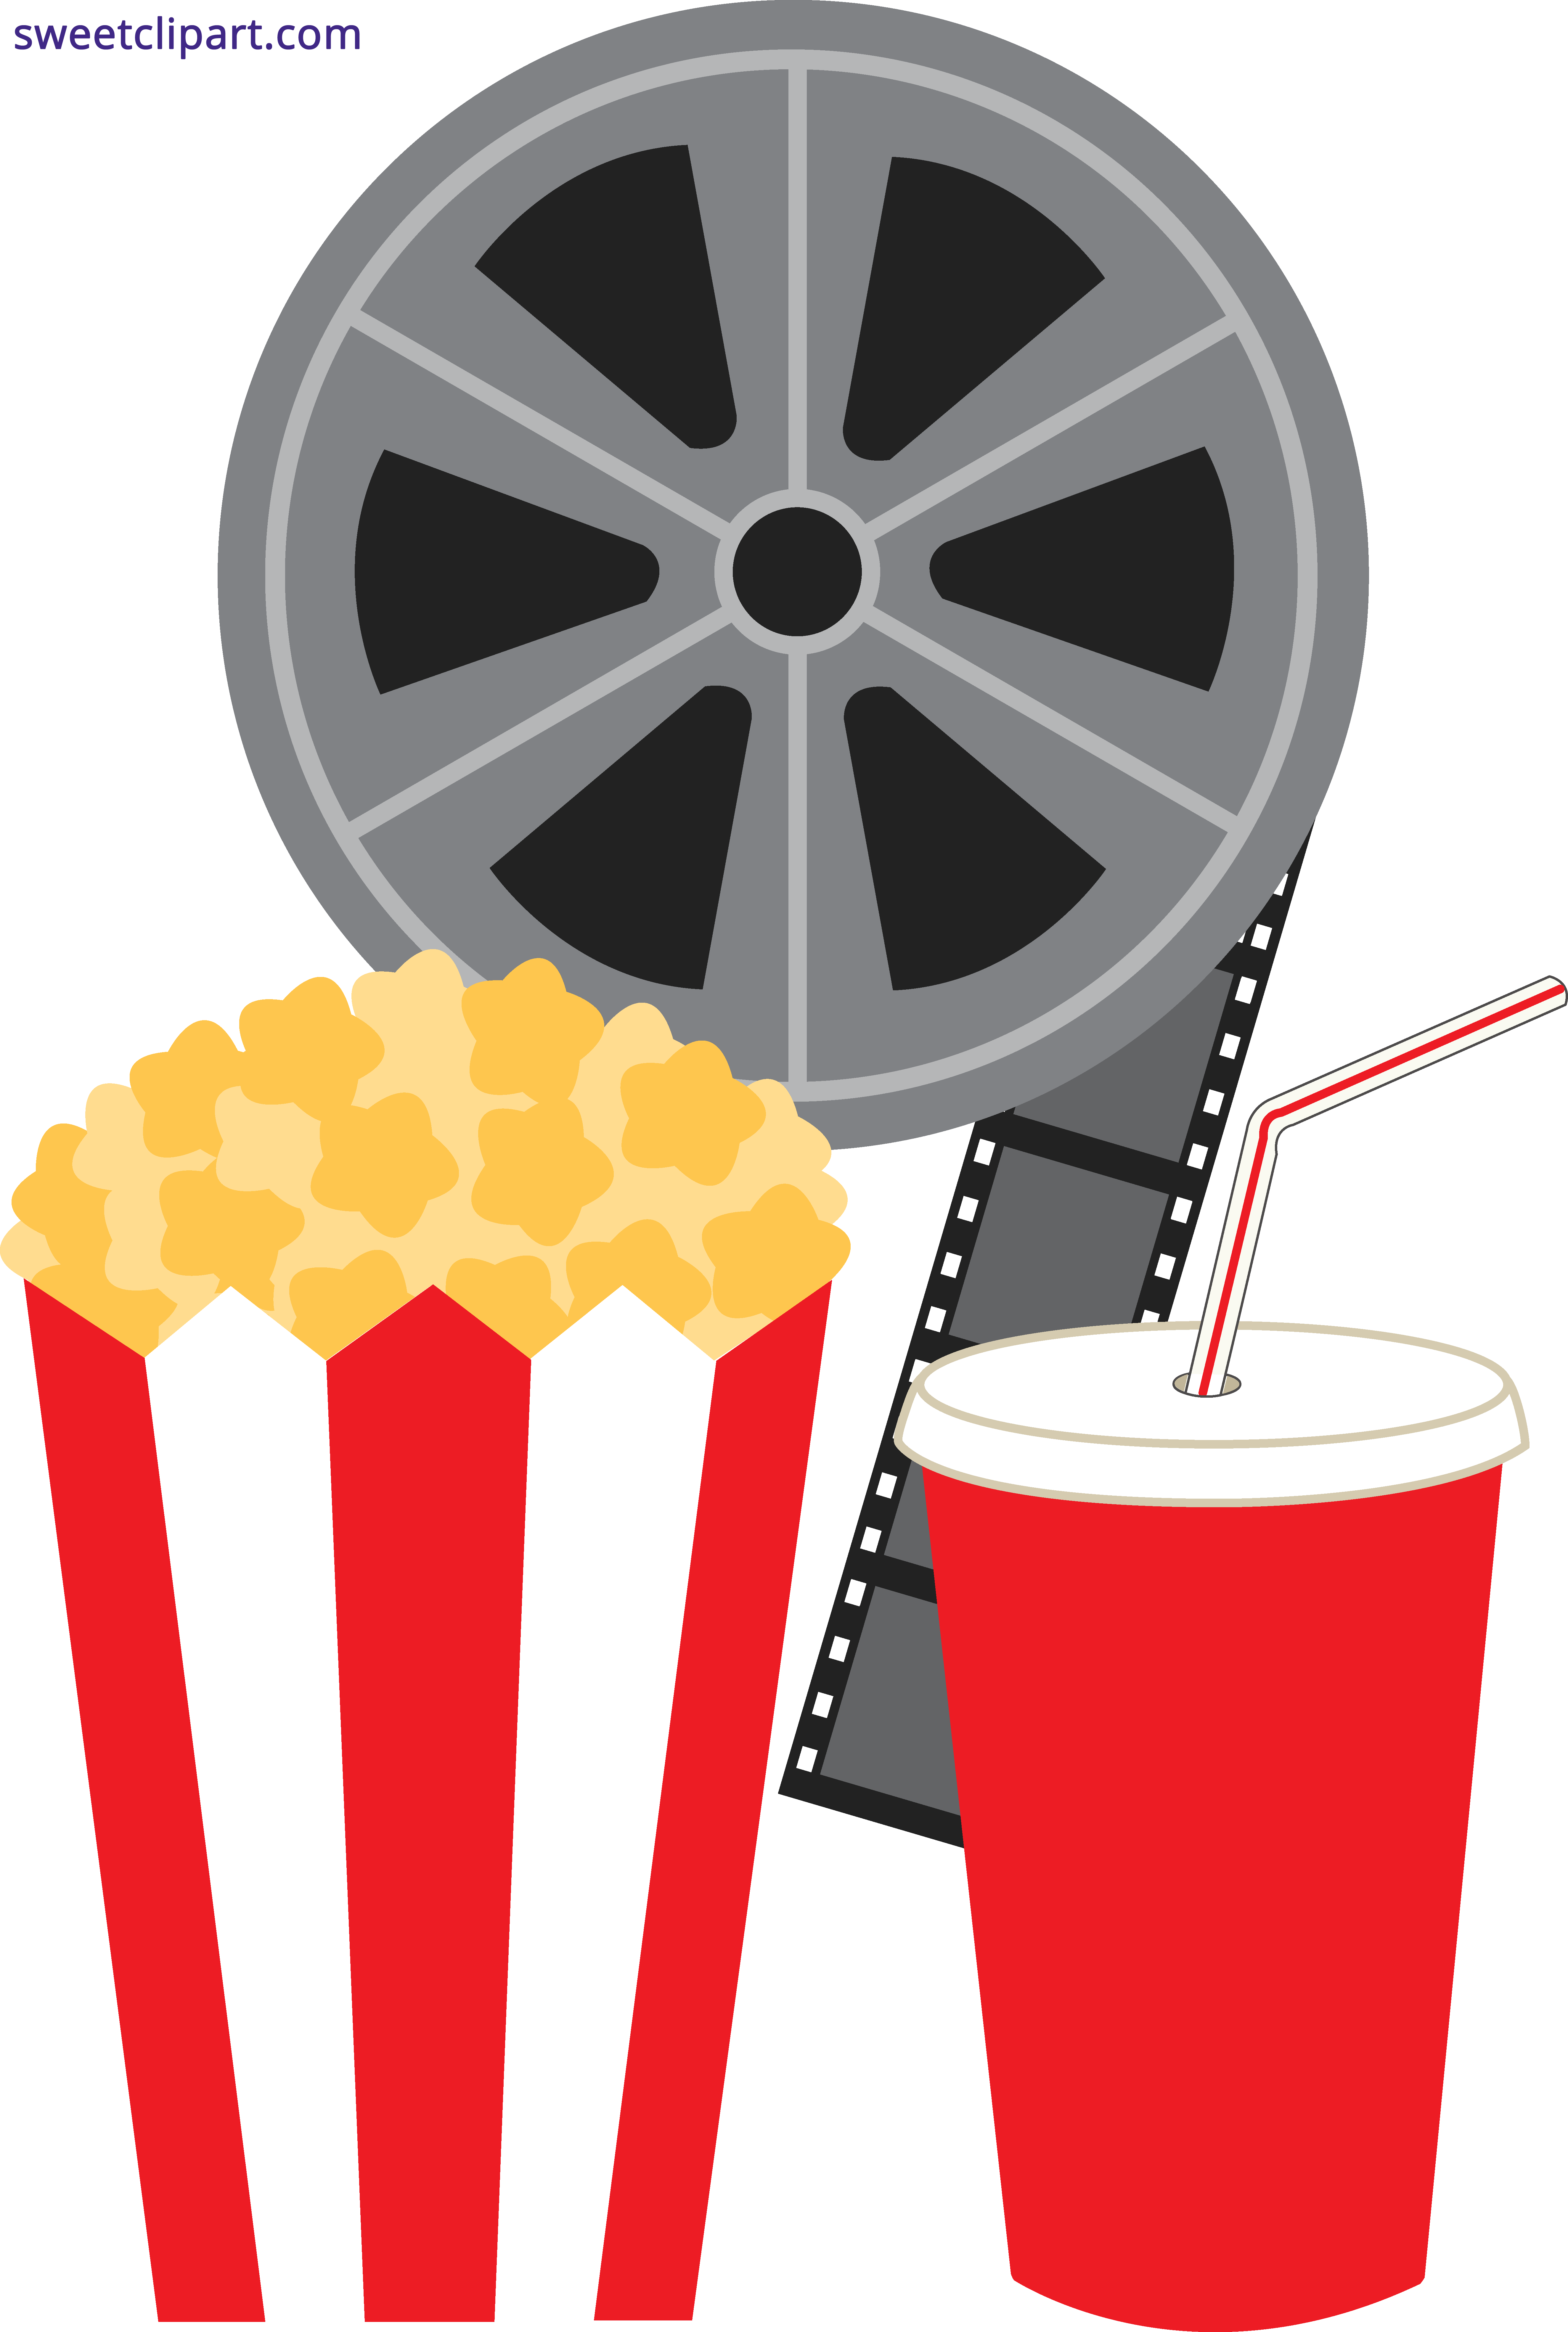 Movie clip art clipart images gallery for free download.